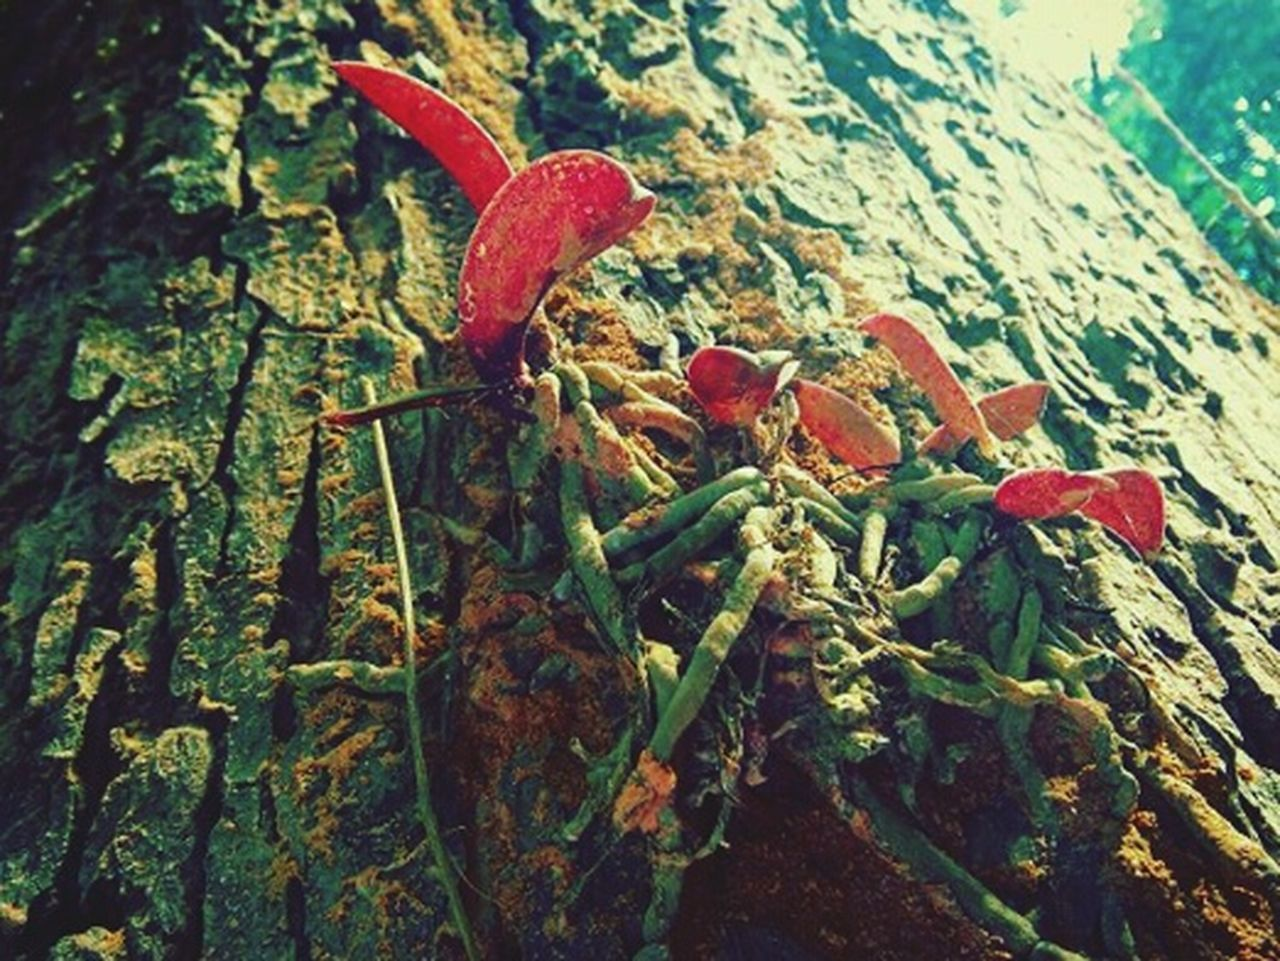 nature, no people, day, close-up, beach, leaf, outdoors, red, beauty in nature, animal themes, undersea